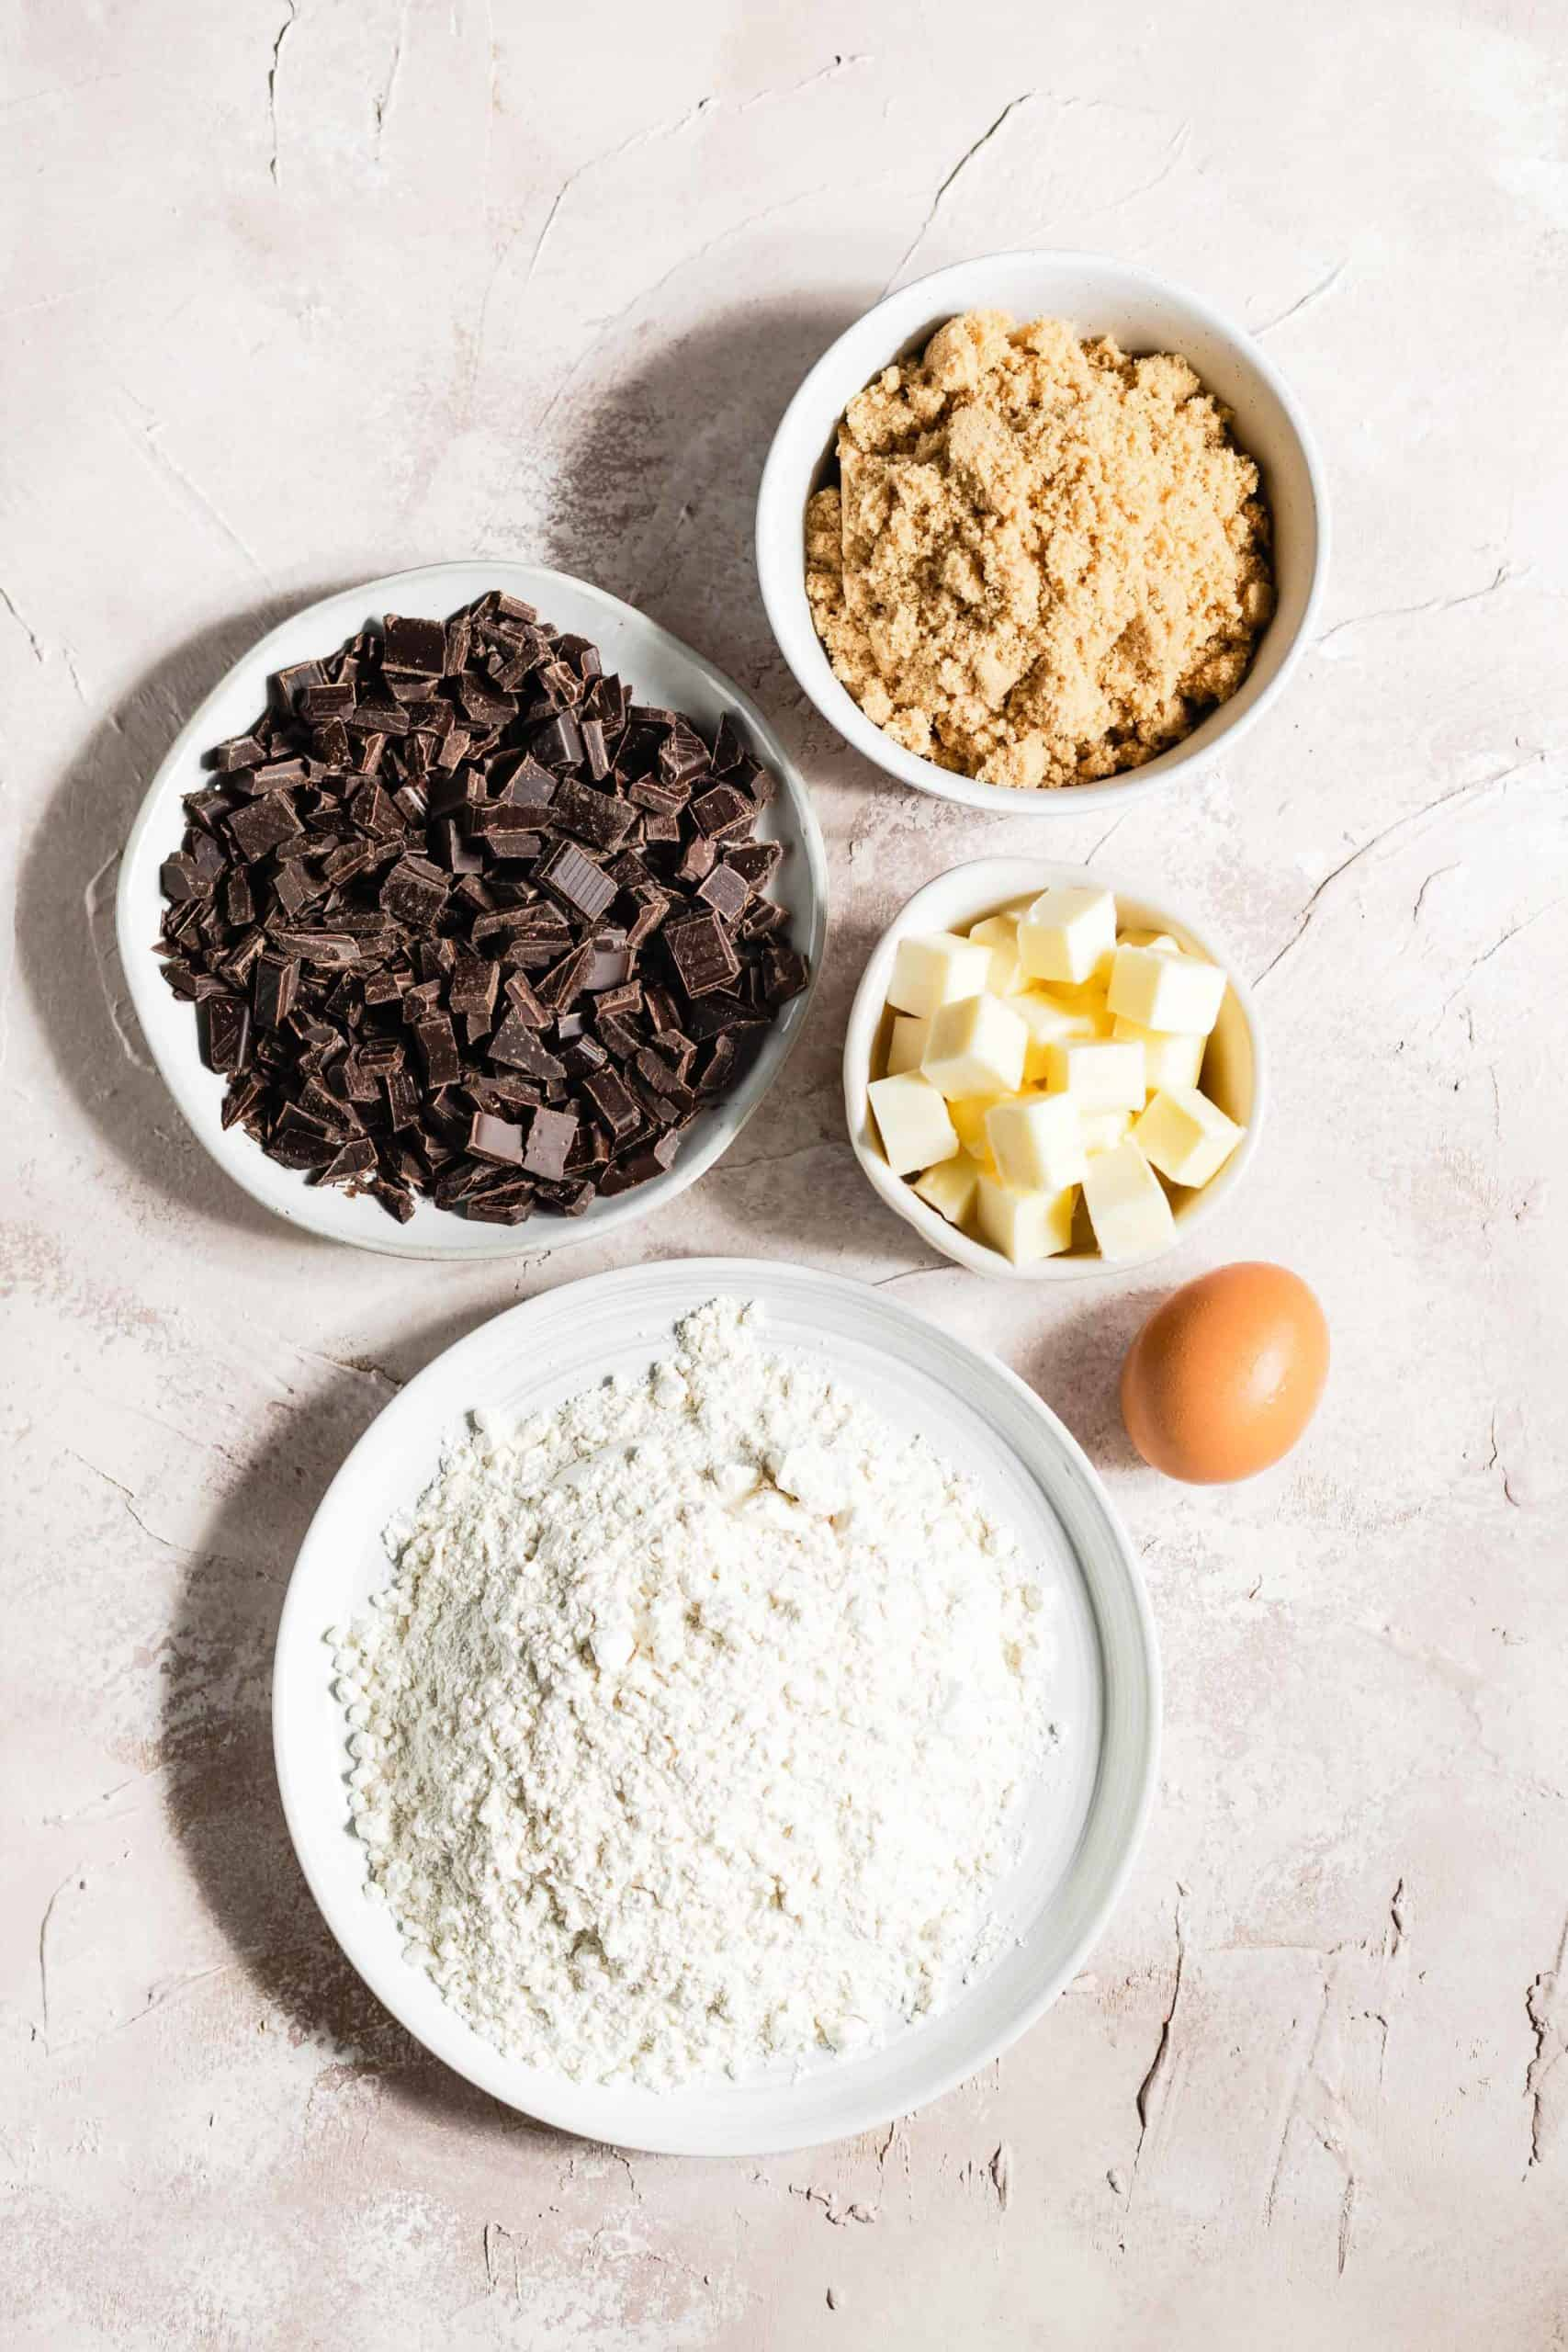 Ingredients for chocolate chip shortbread cookies